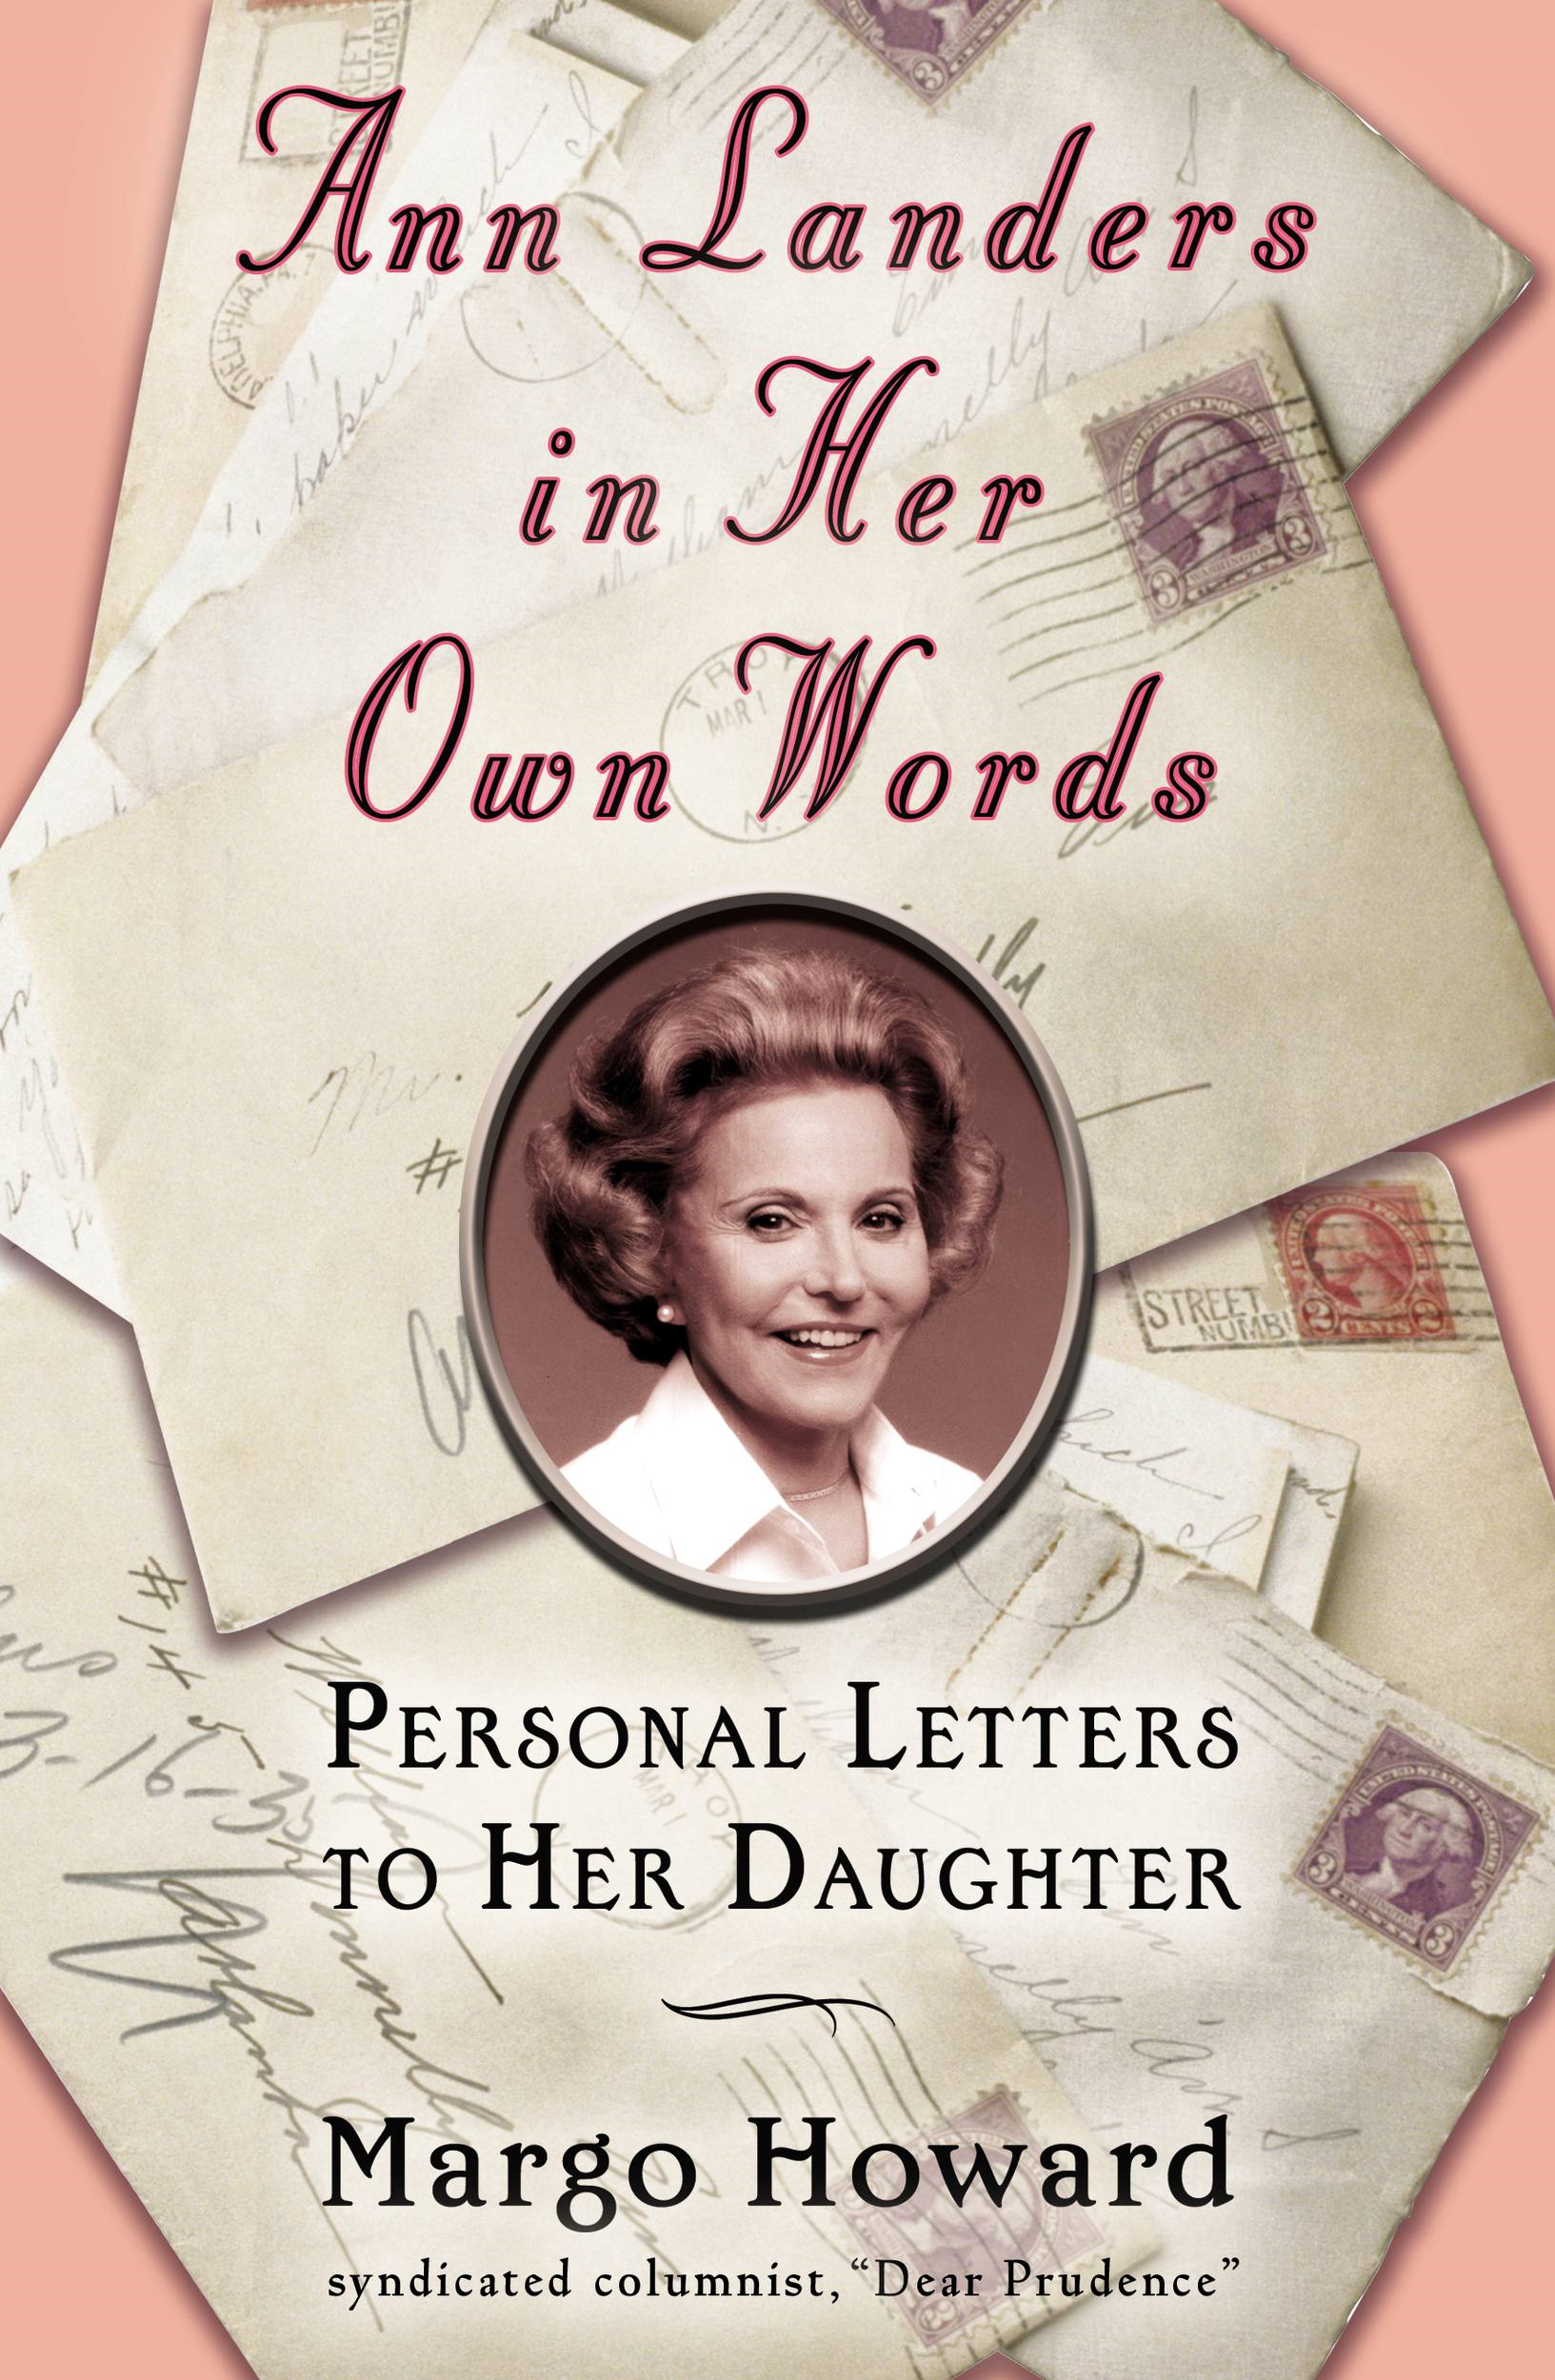 Ann Landers in Her Own Words